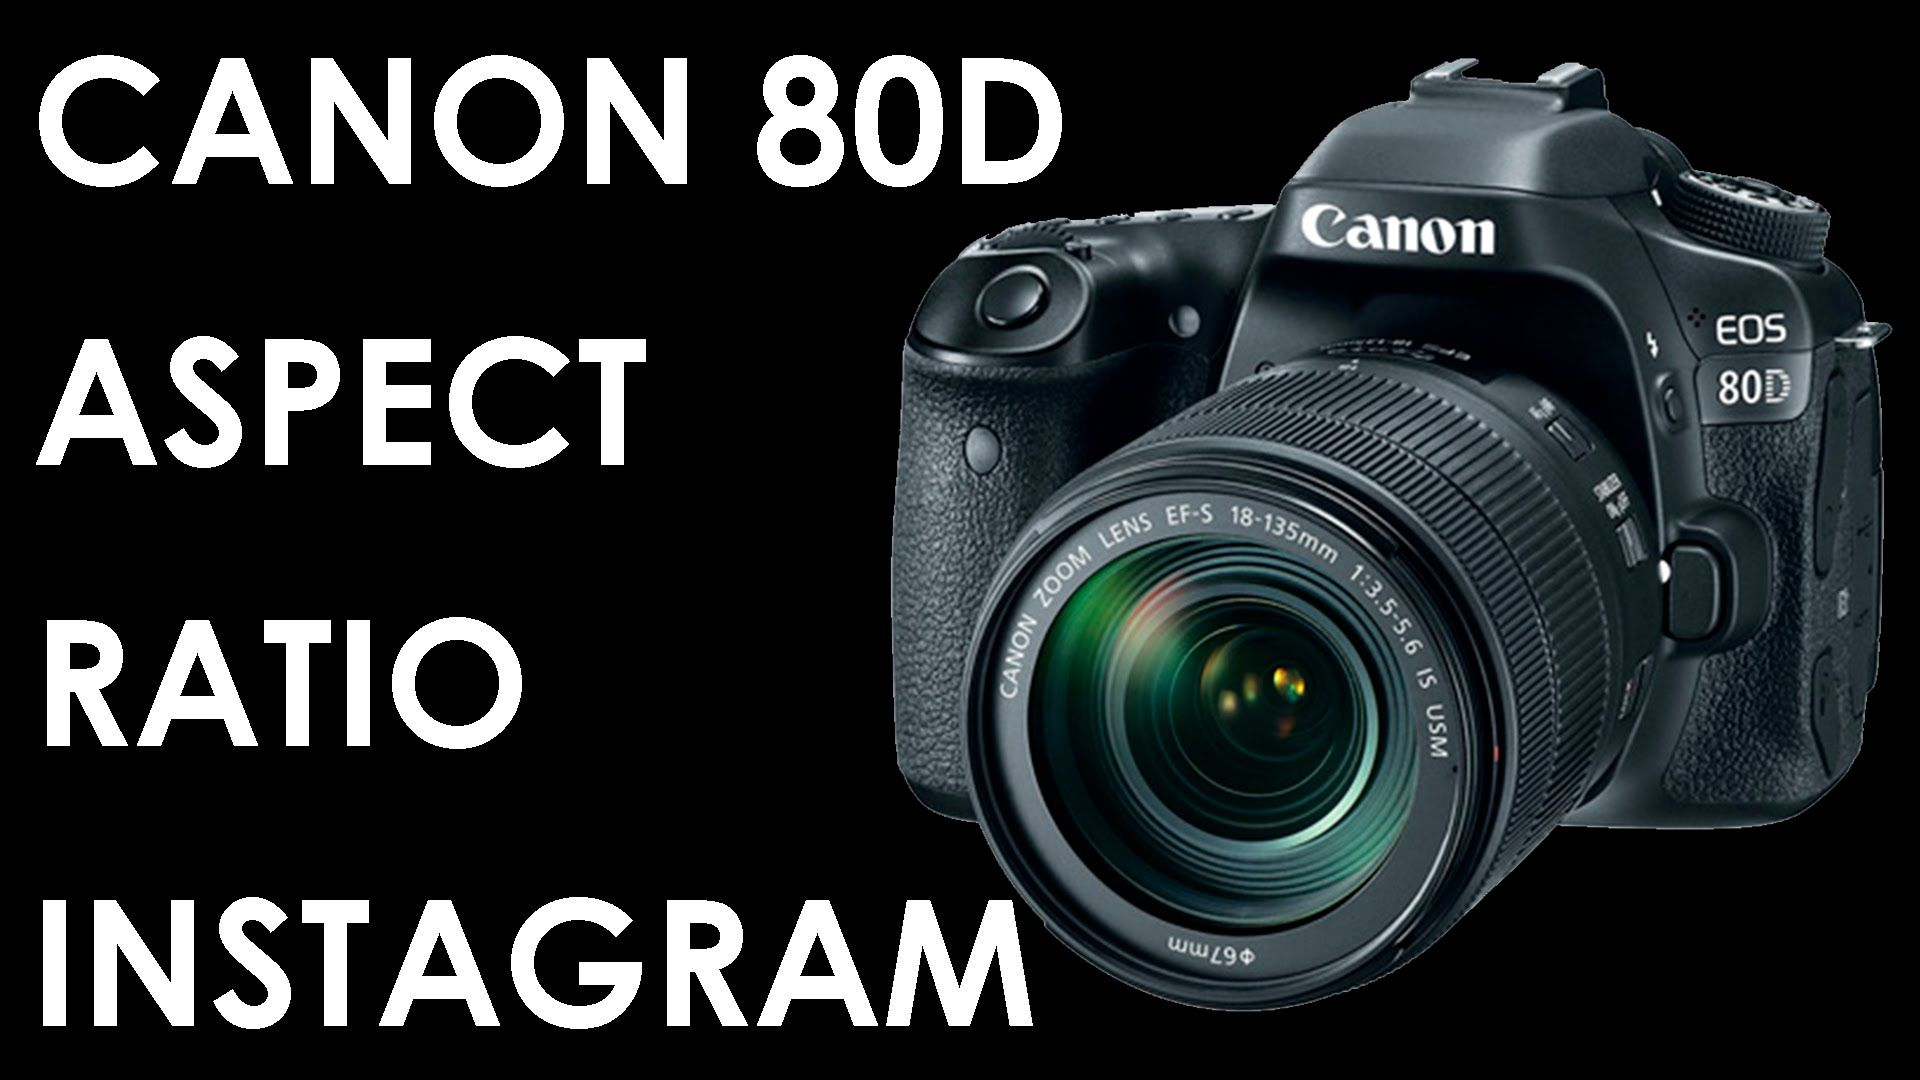 Canon 80d How To Change Aspect Ratio Quickly Sharing Pictures Made Easy Canon Camera Canon Eos Camera Lenses Canon